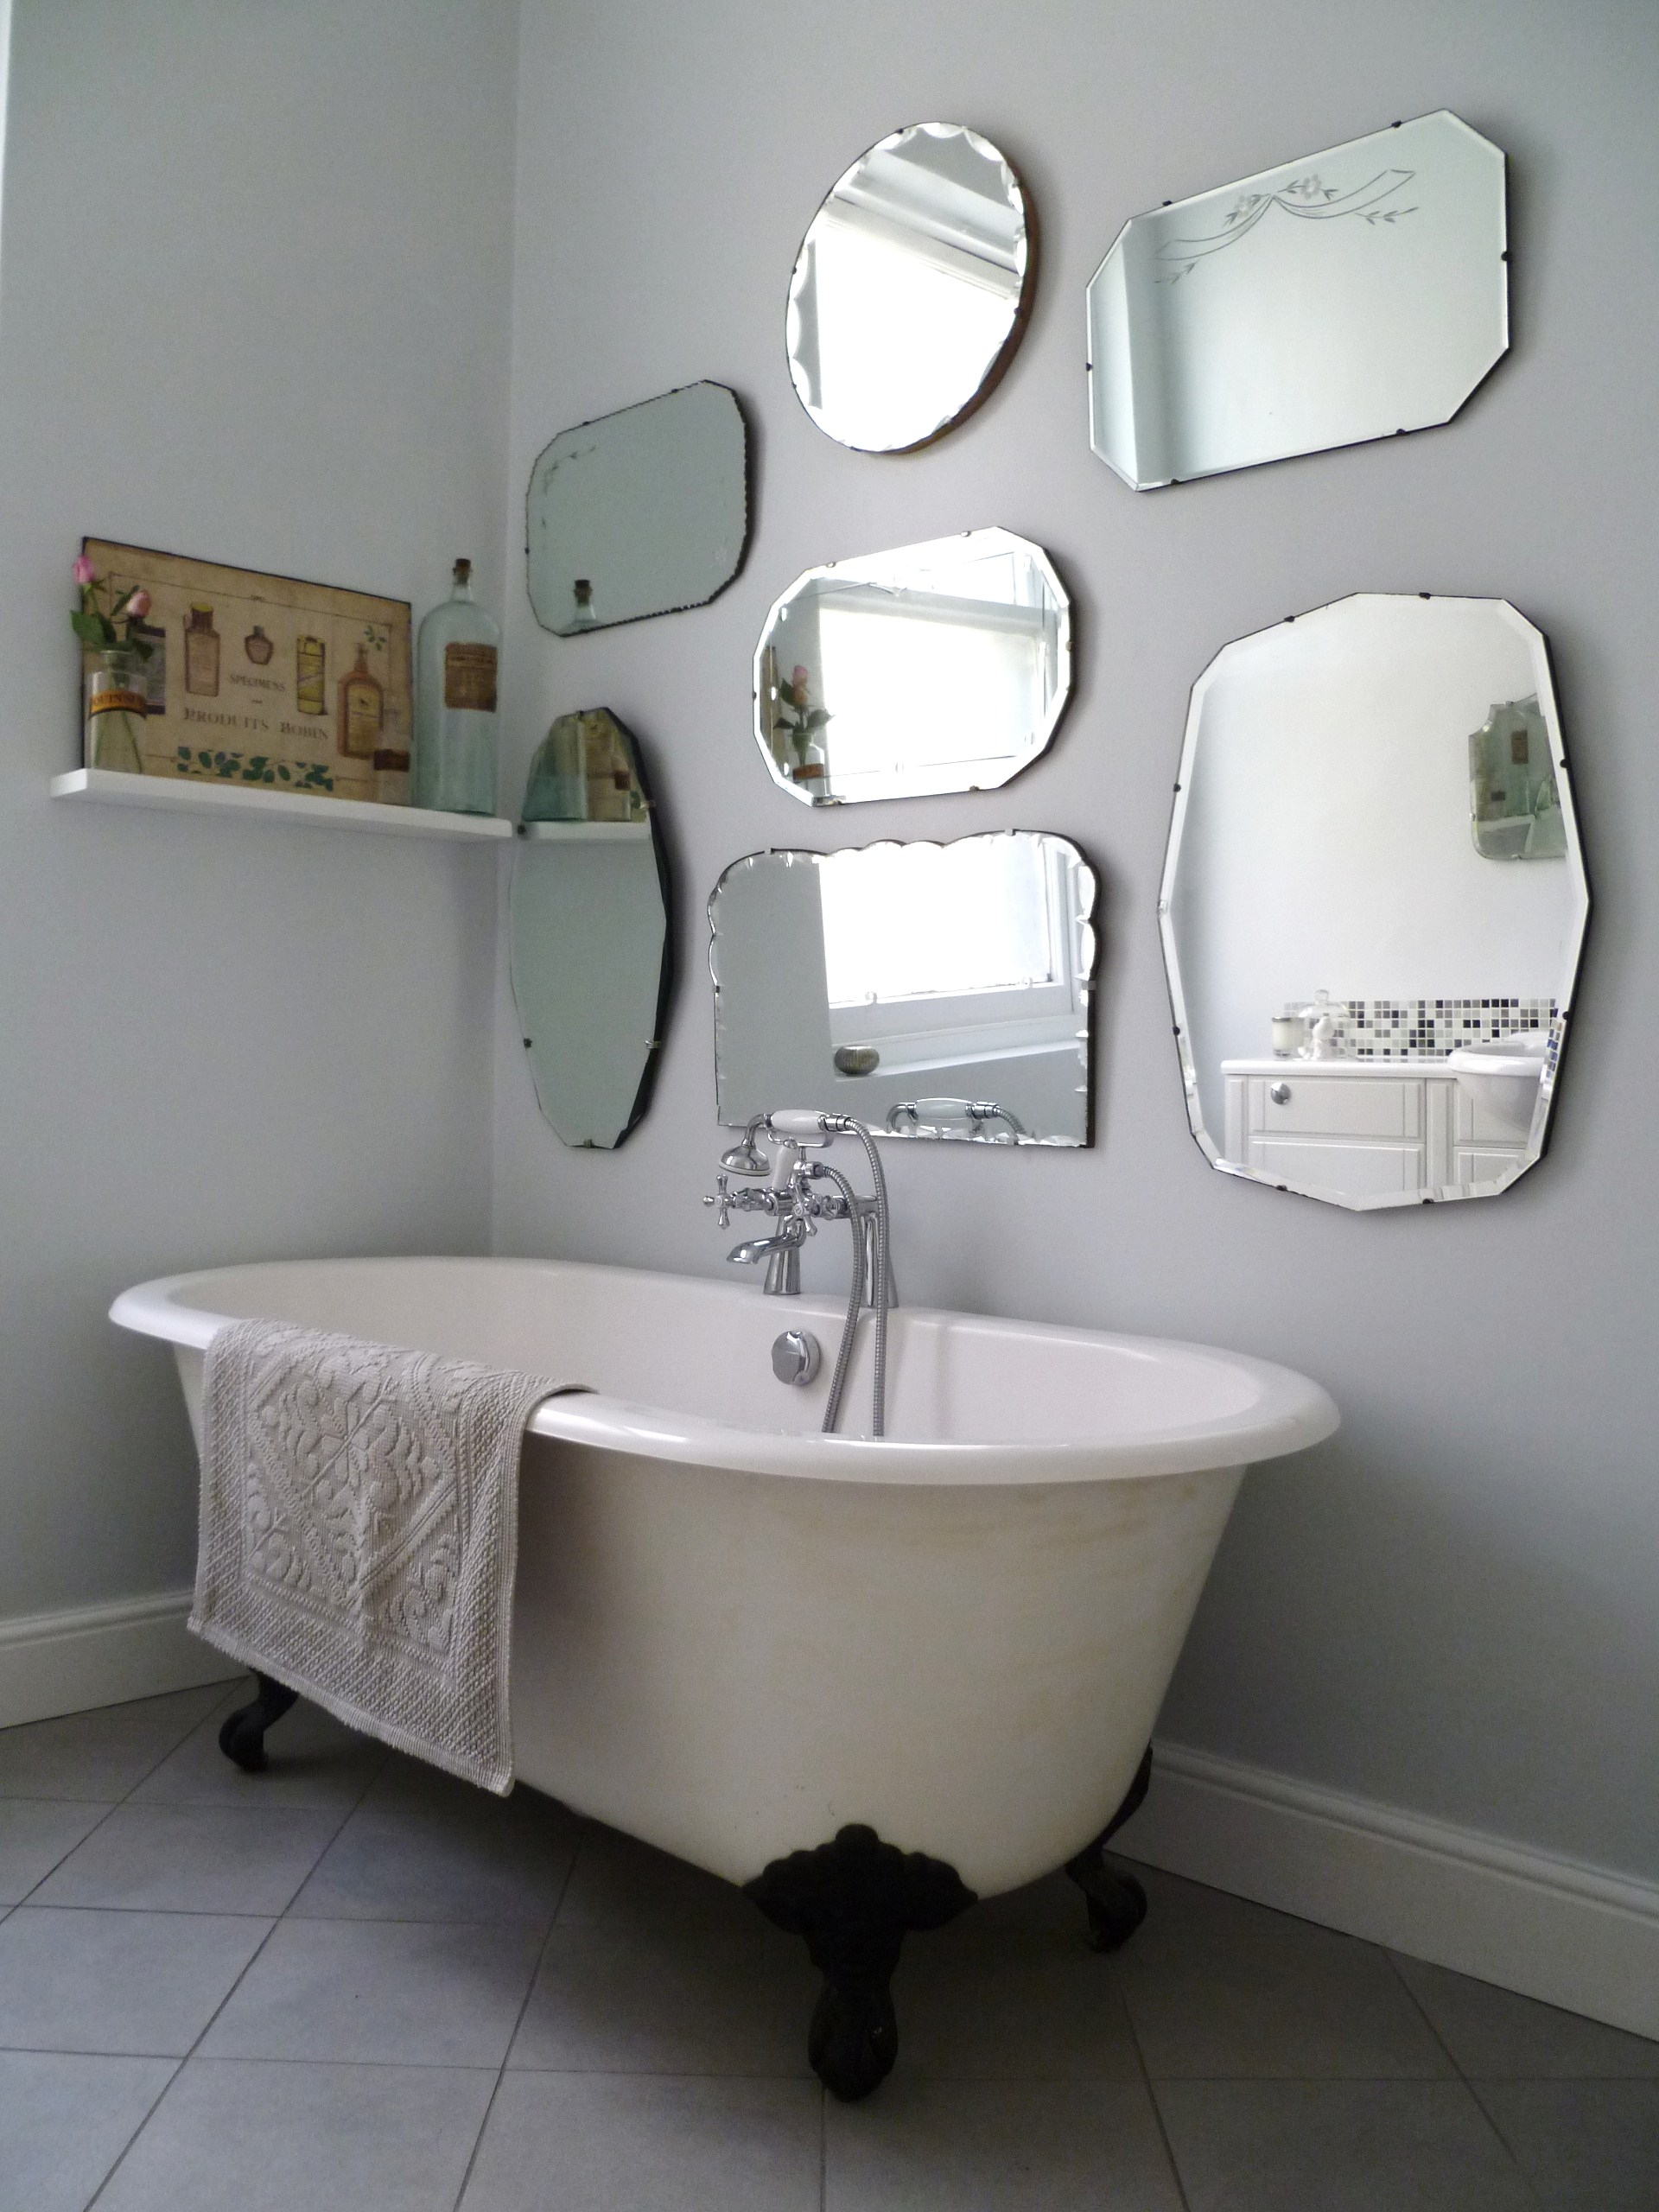 How To Hang A Display Of Vintage Mirrors Mirror Walls Grey And Intended For Antique Frameless Mirrors (View 2 of 15)